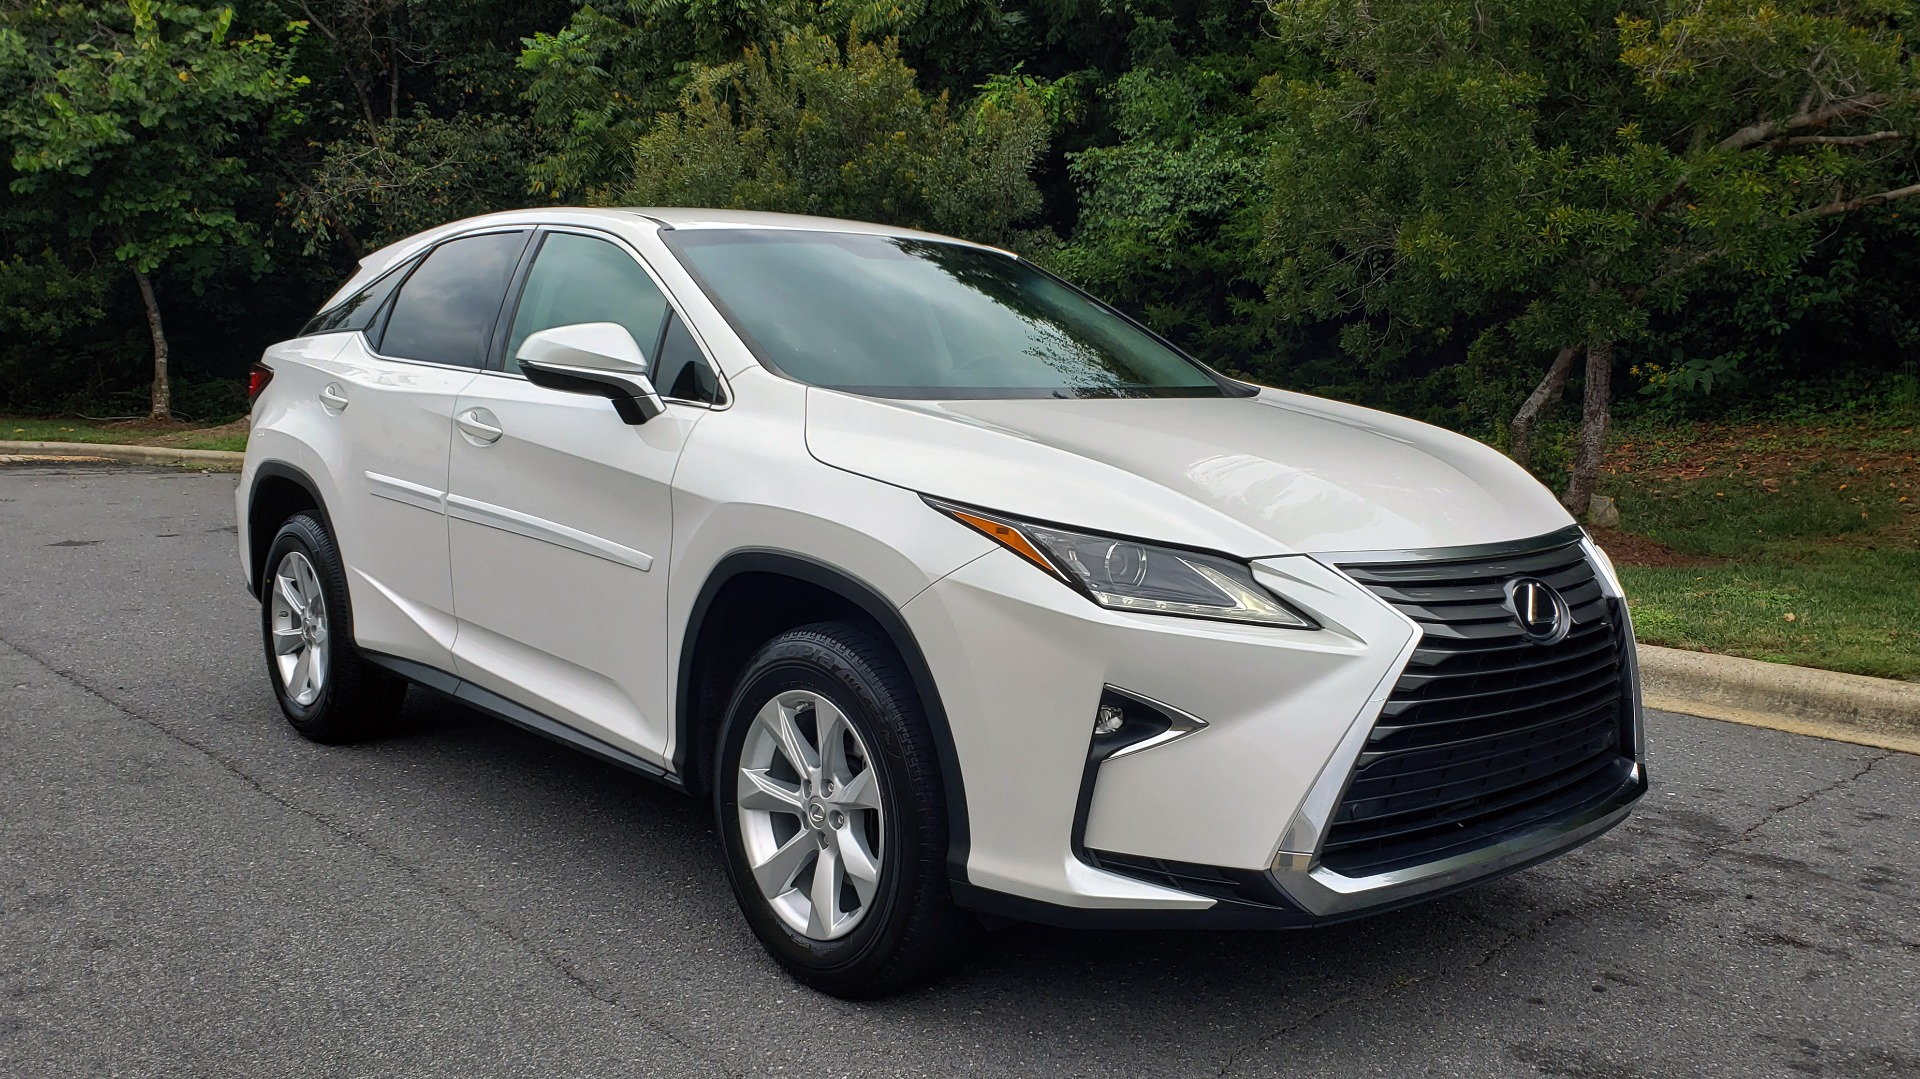 Used 2016 Lexus RX 350 FWD / 4-DR / 3.5L V6 / 8-SPD AUTO / LEATHER / REARVIEW for sale $29,795 at Formula Imports in Charlotte NC 28227 8